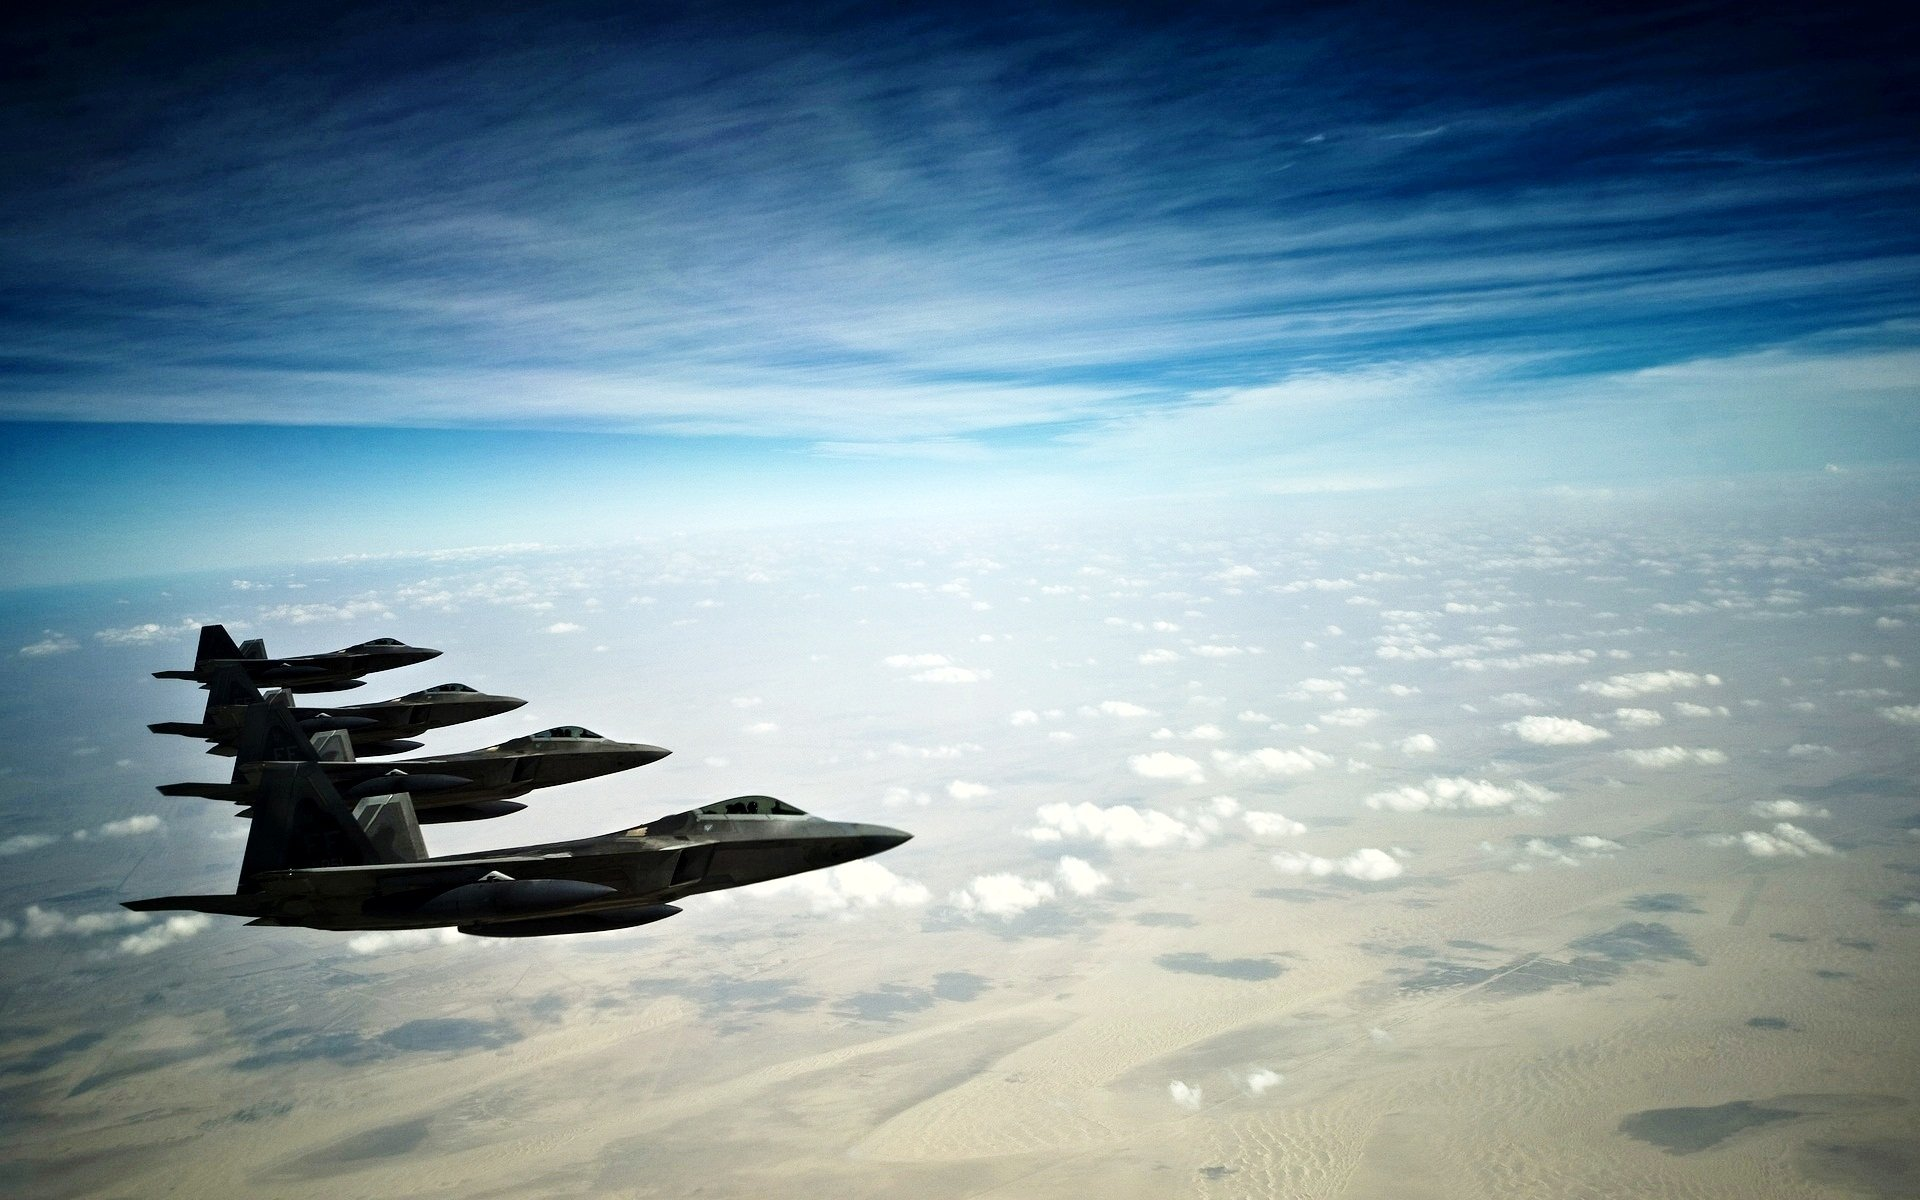 22 Raptor Stealth Fighters Wallpapers HD Wallpapers 1920x1200